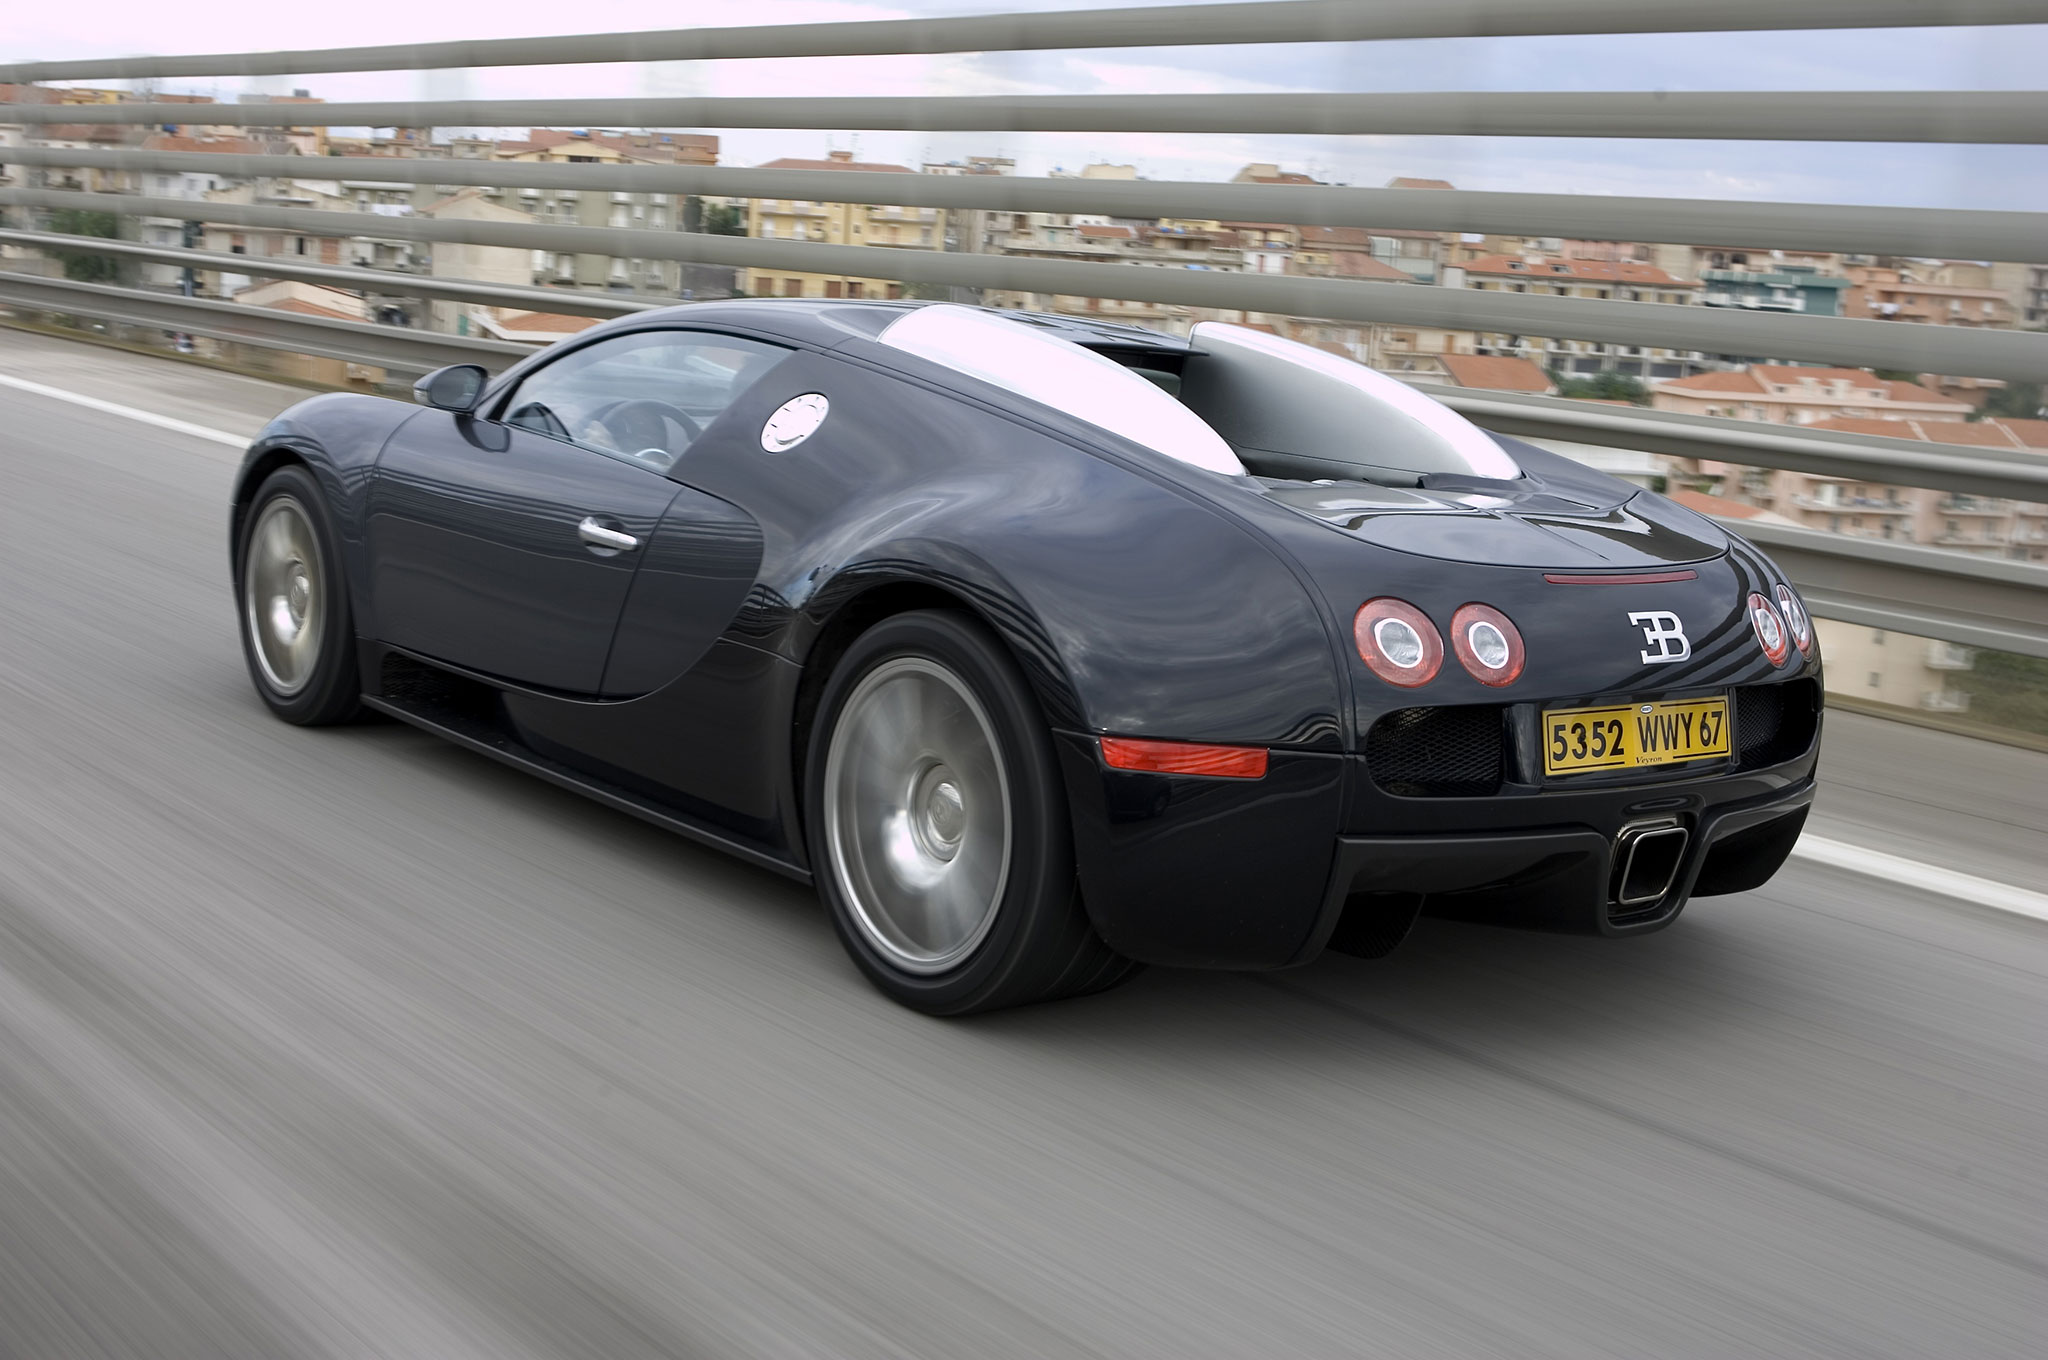 Michelin Run Flat Tires >> 2005 Bugatti Veyron EB 16.4 Review